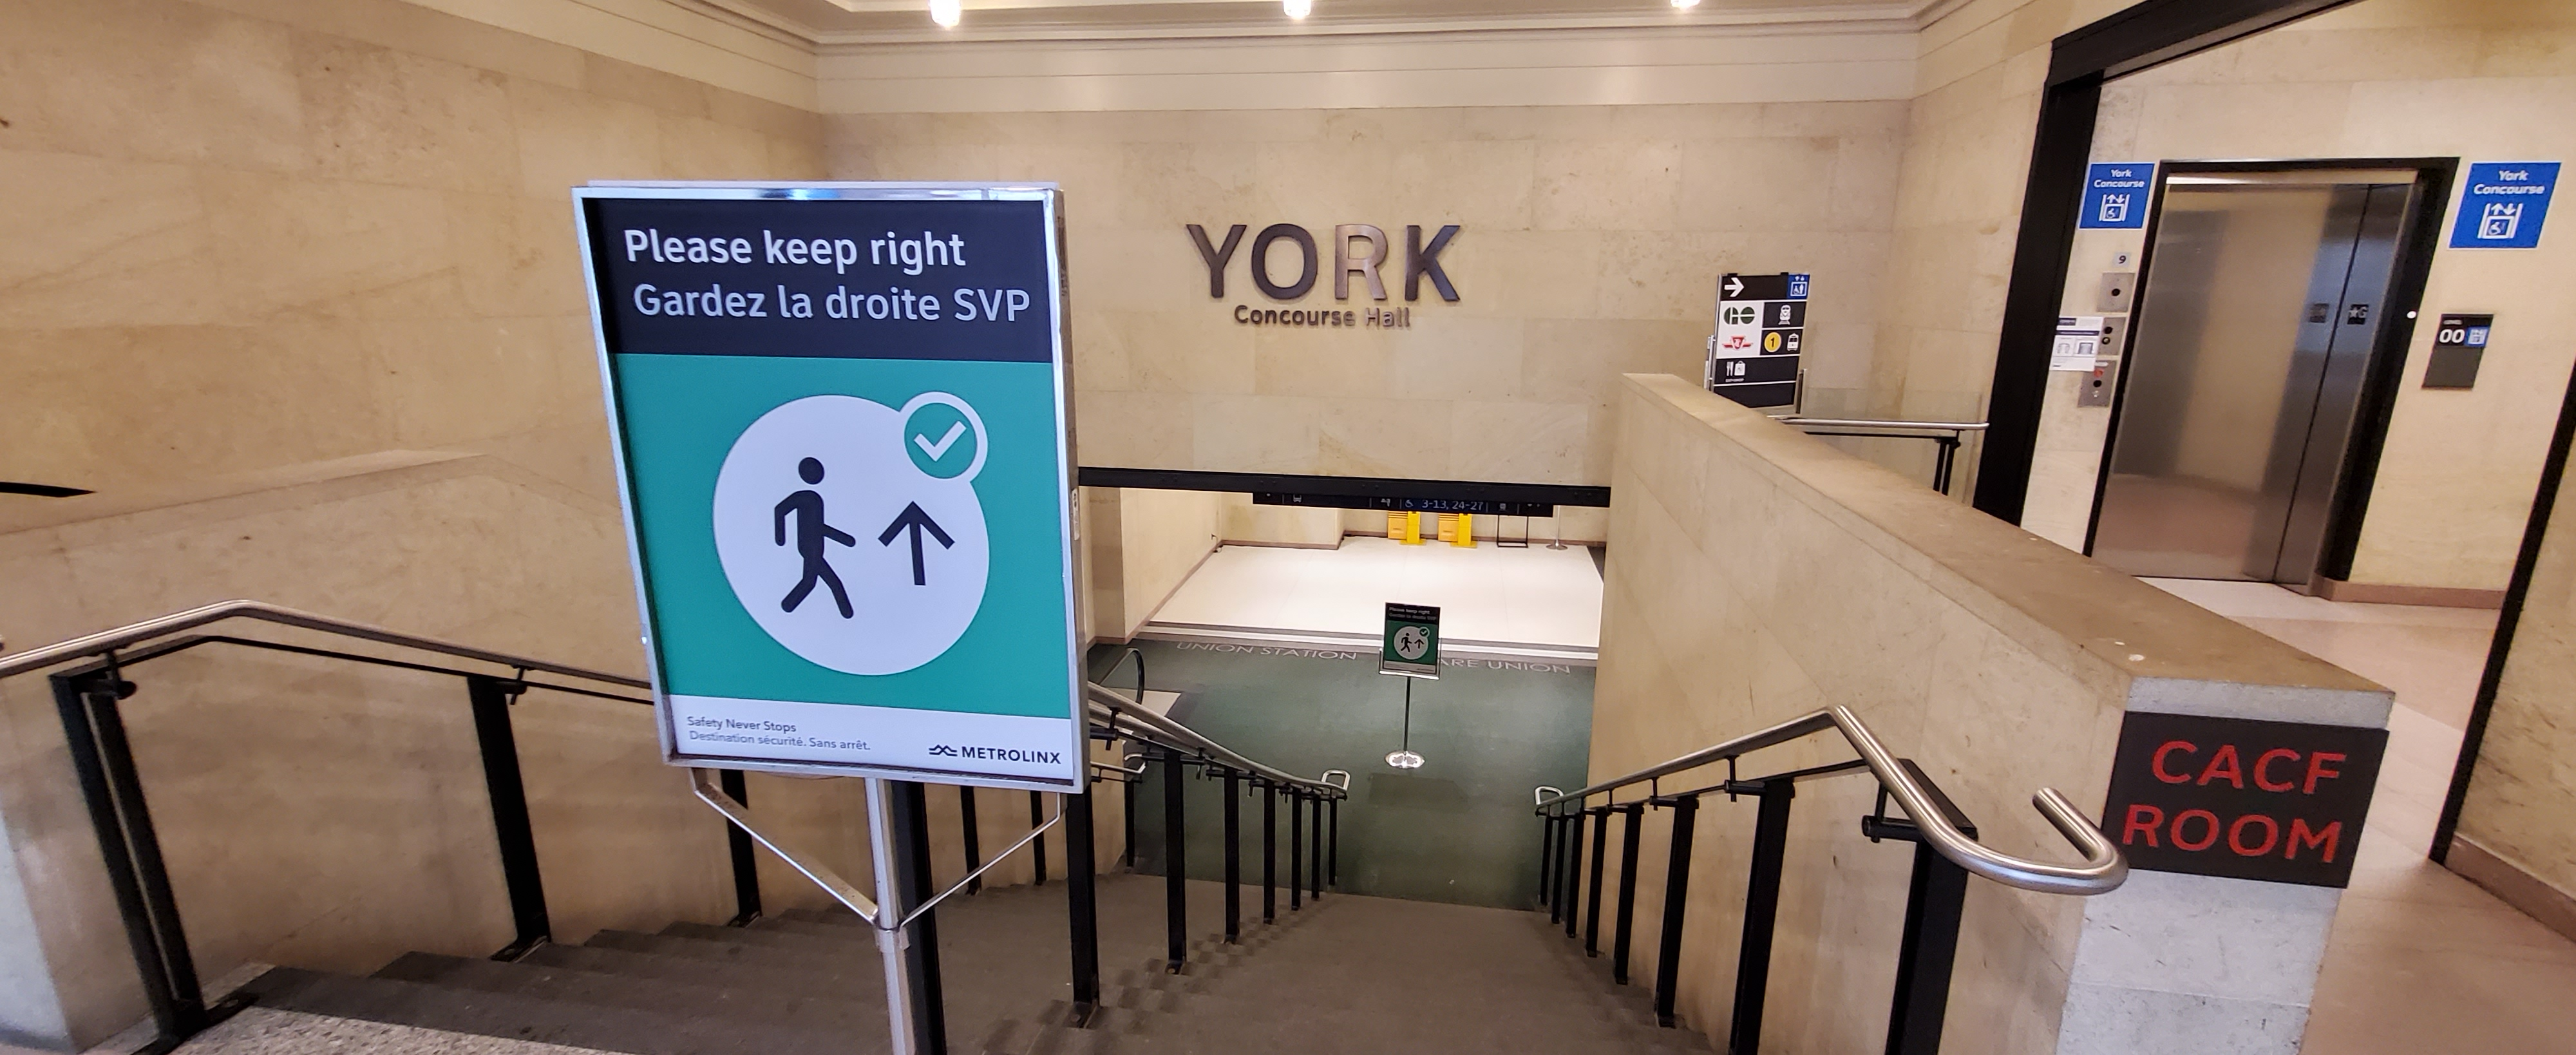 Image shows a sign that tells people on the stairs to stay to the right.